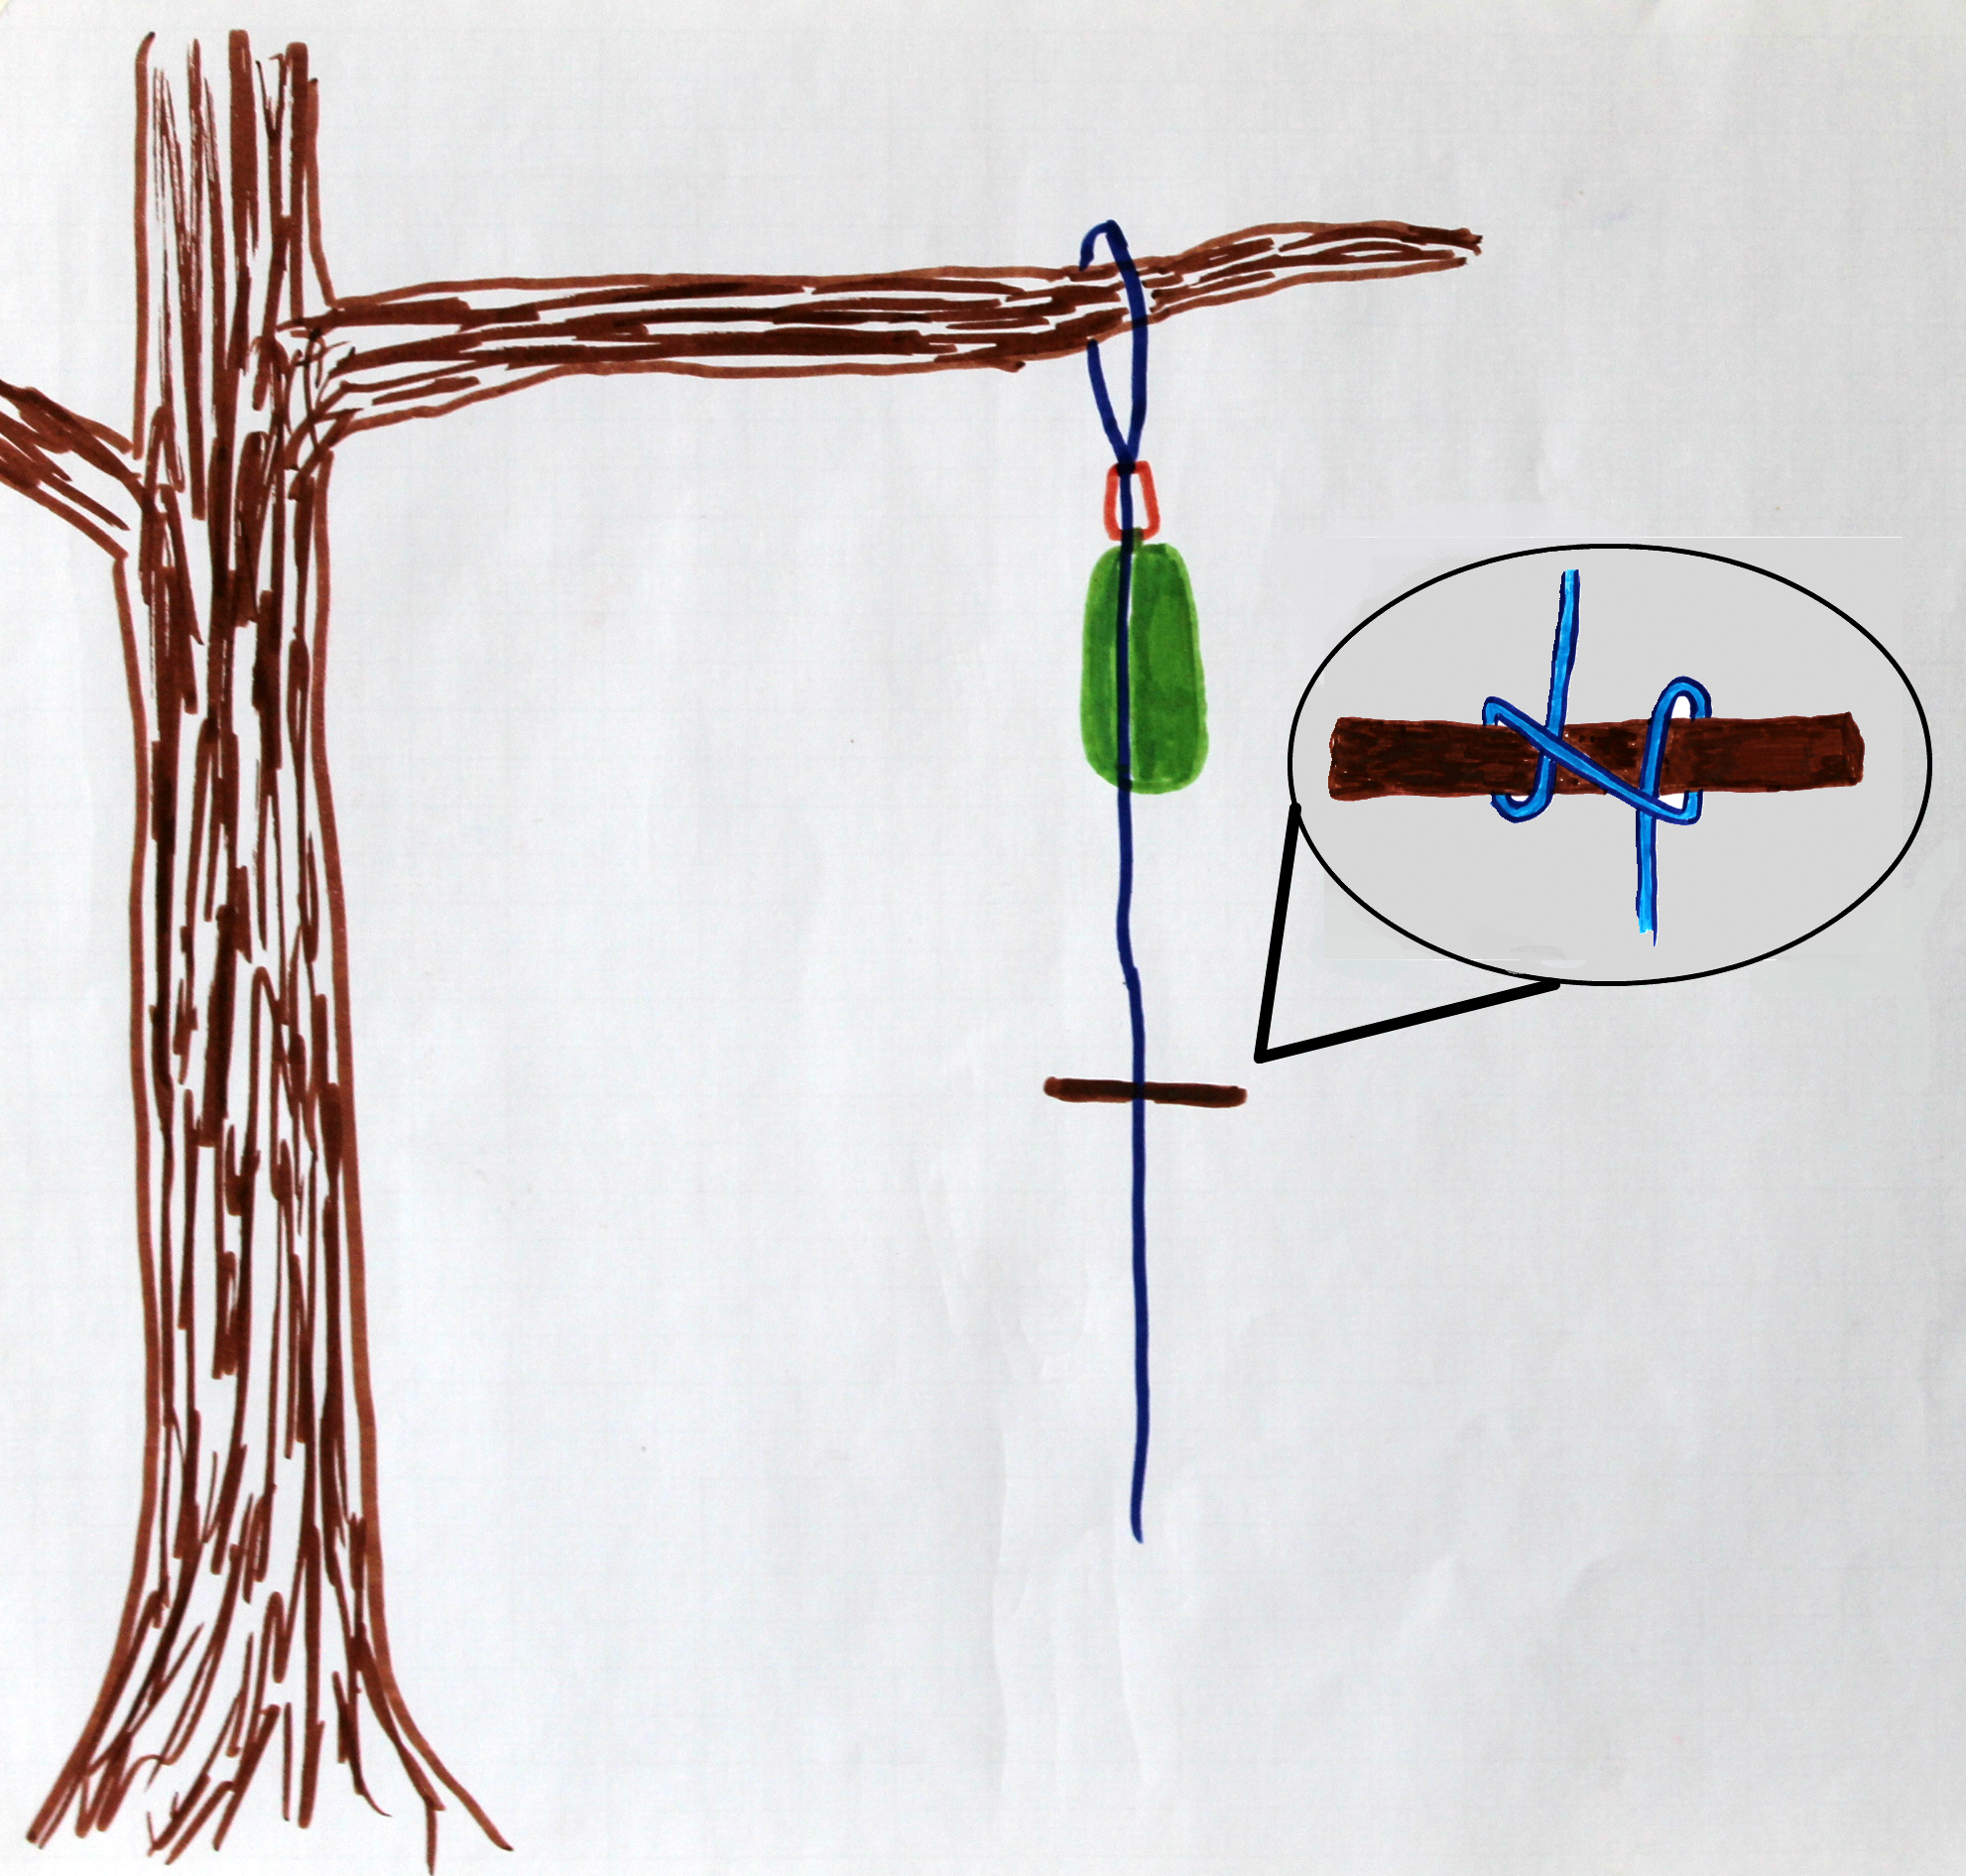 5 Ways To Hang A Bear Bag Mom Goes Camping Tie Tying Diagram While Holding The Food In Air Use Clove Hitch